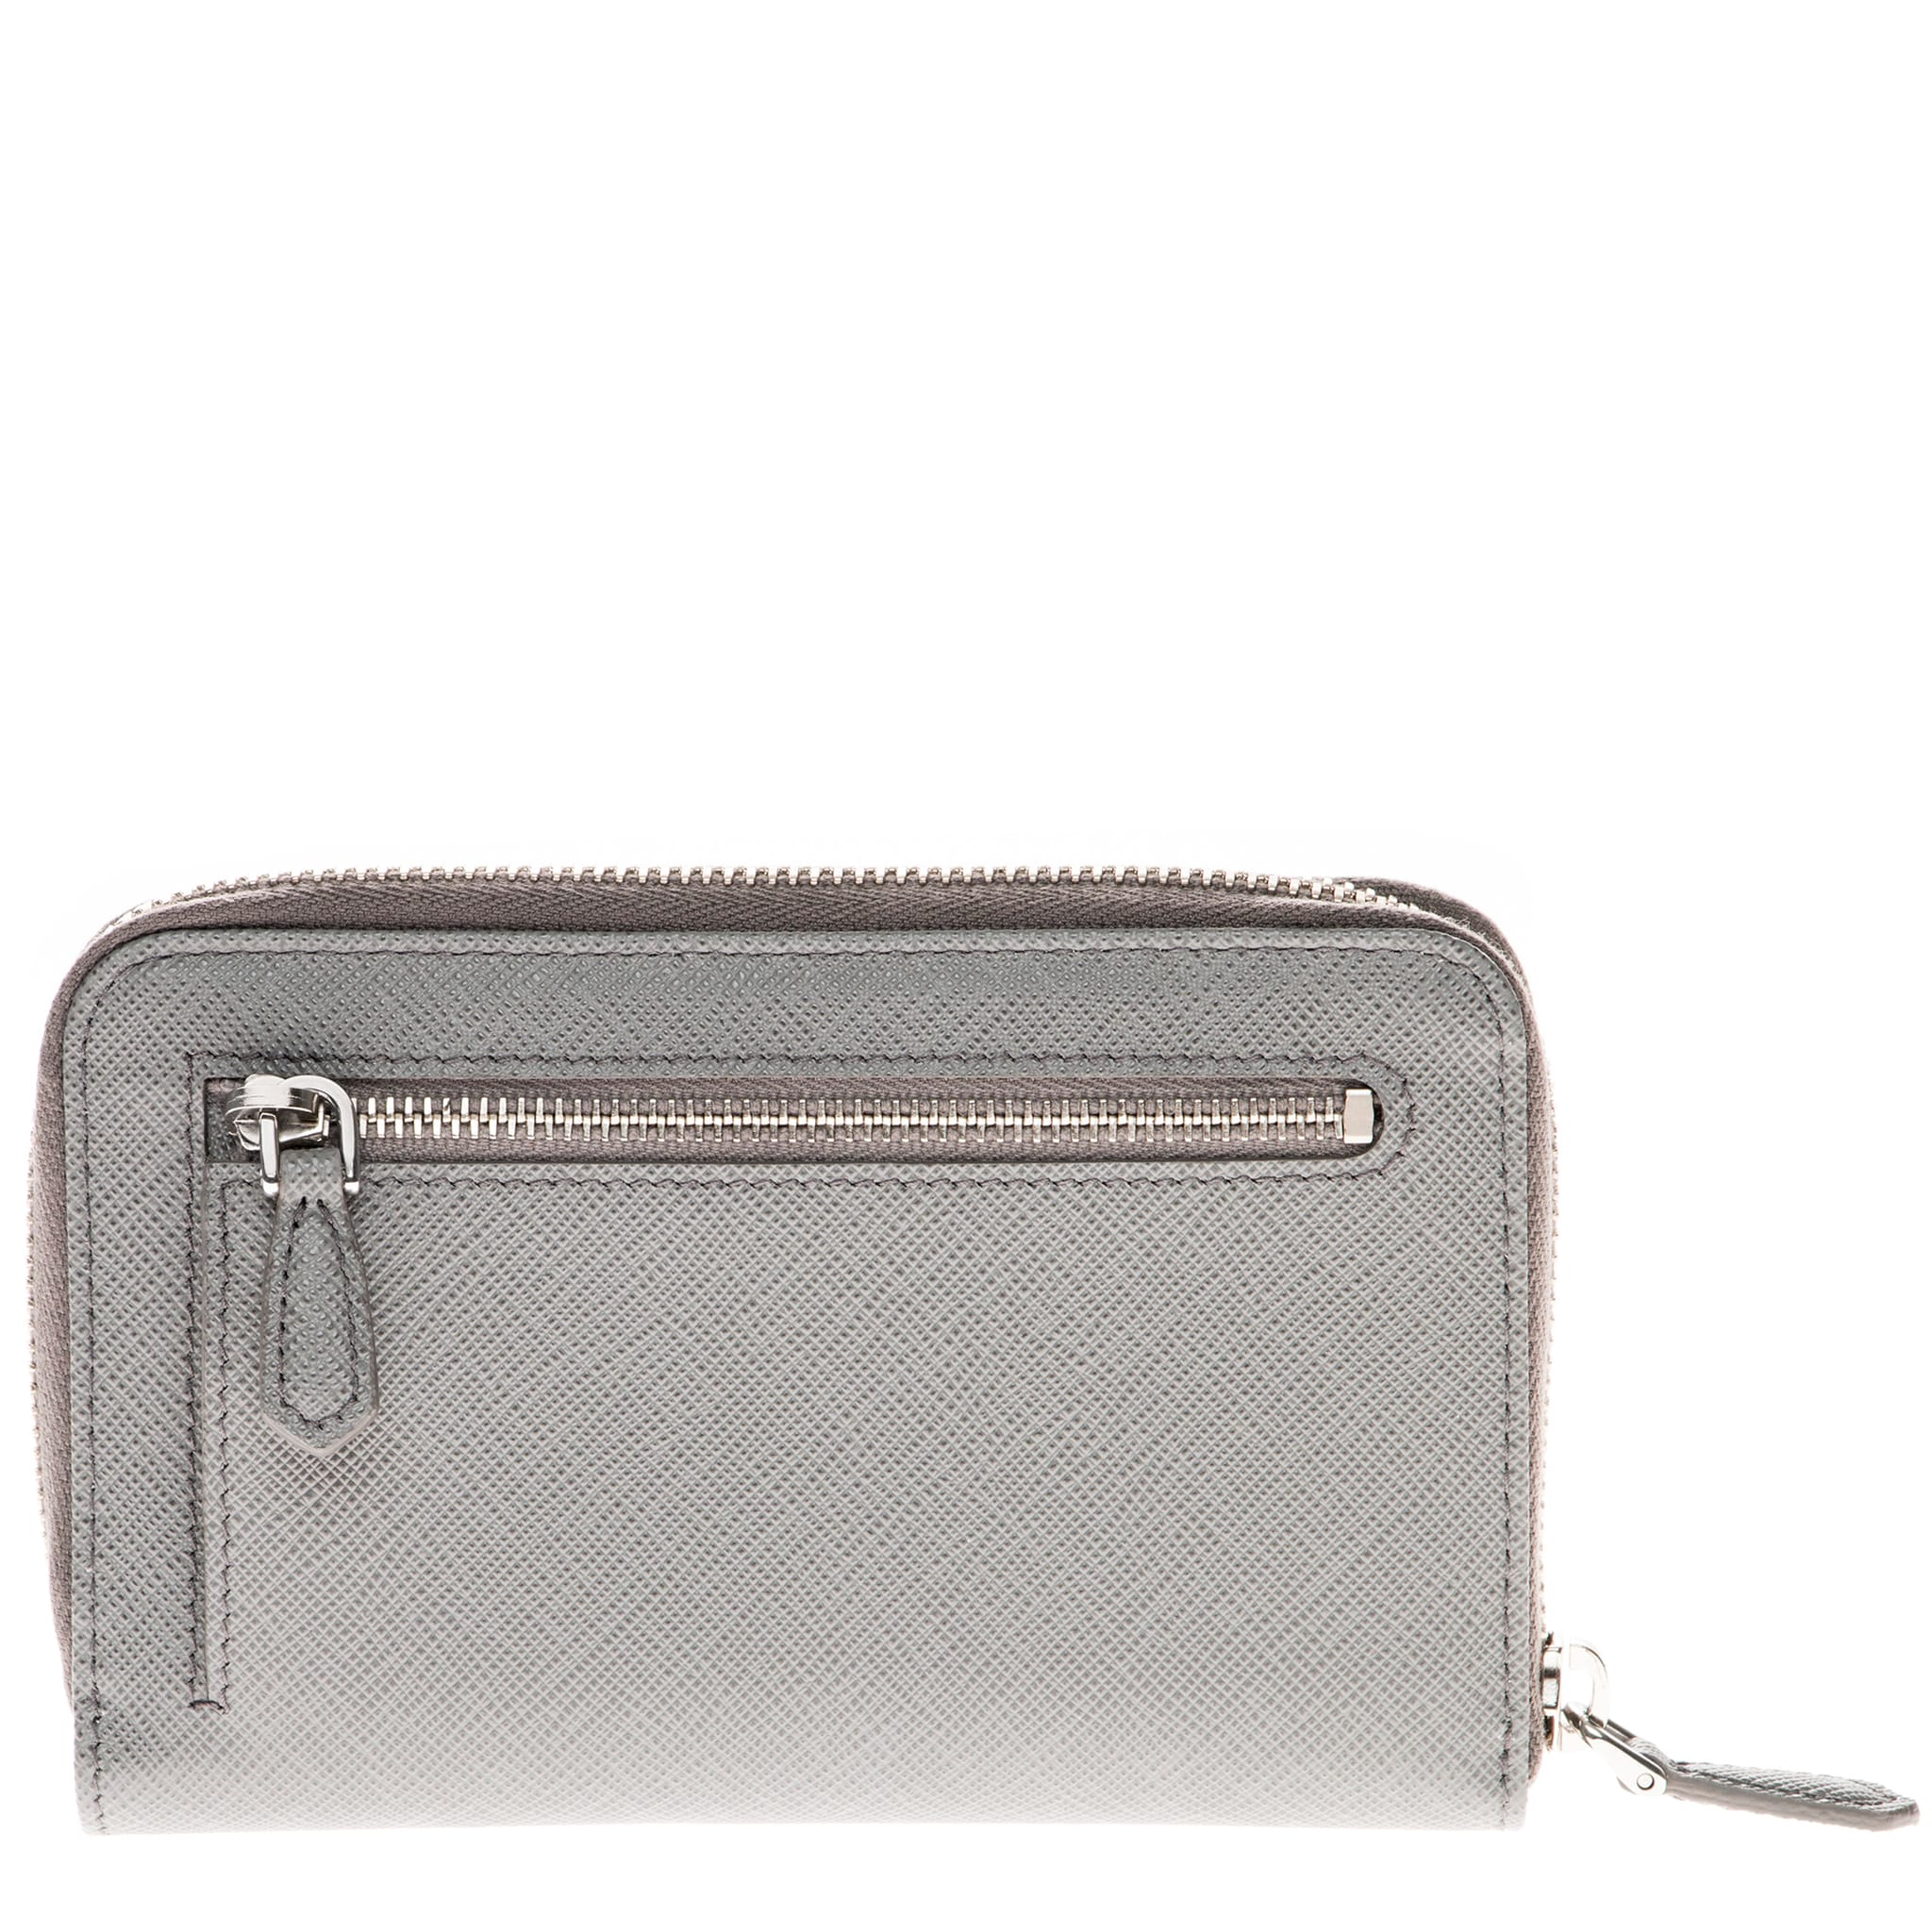 4cee3cdba93a69 Shop Prada Saffiano Triangle Leather Wallet Grey - Free Shipping Today -  Overstock - 10614113